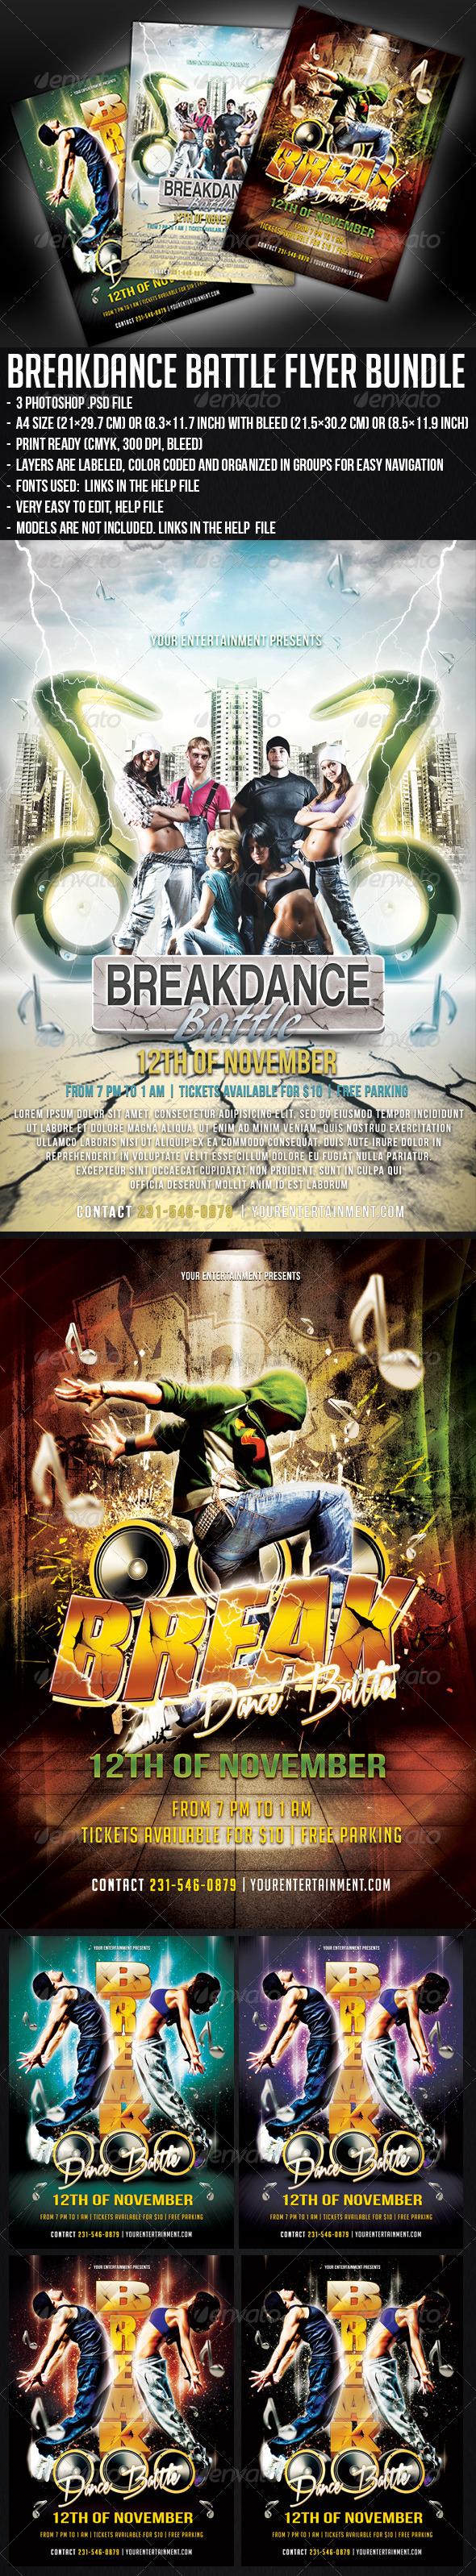 GraphicRiver Breakdance Battle Flyer Bundle 5812810